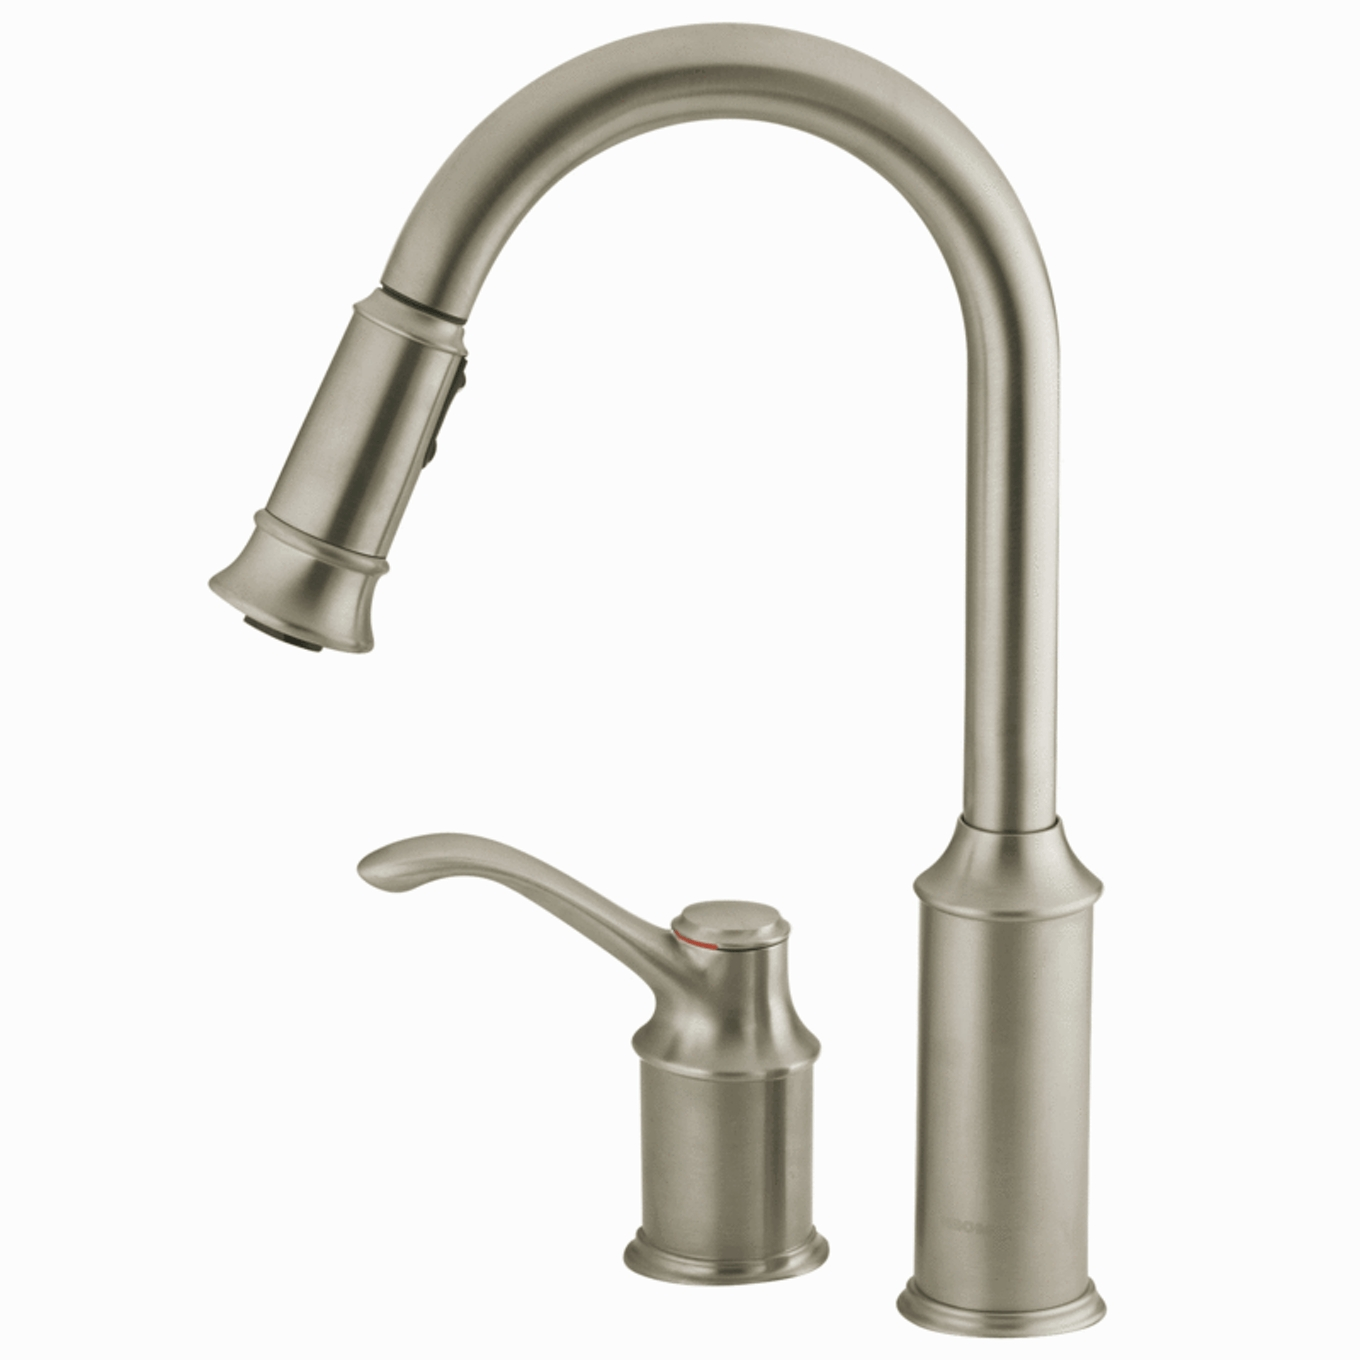 Ideas, best rated bathroom faucets best rated bathroom faucets beautiful best rated bathroom faucets ideas home decorating 1360 x 1360  .